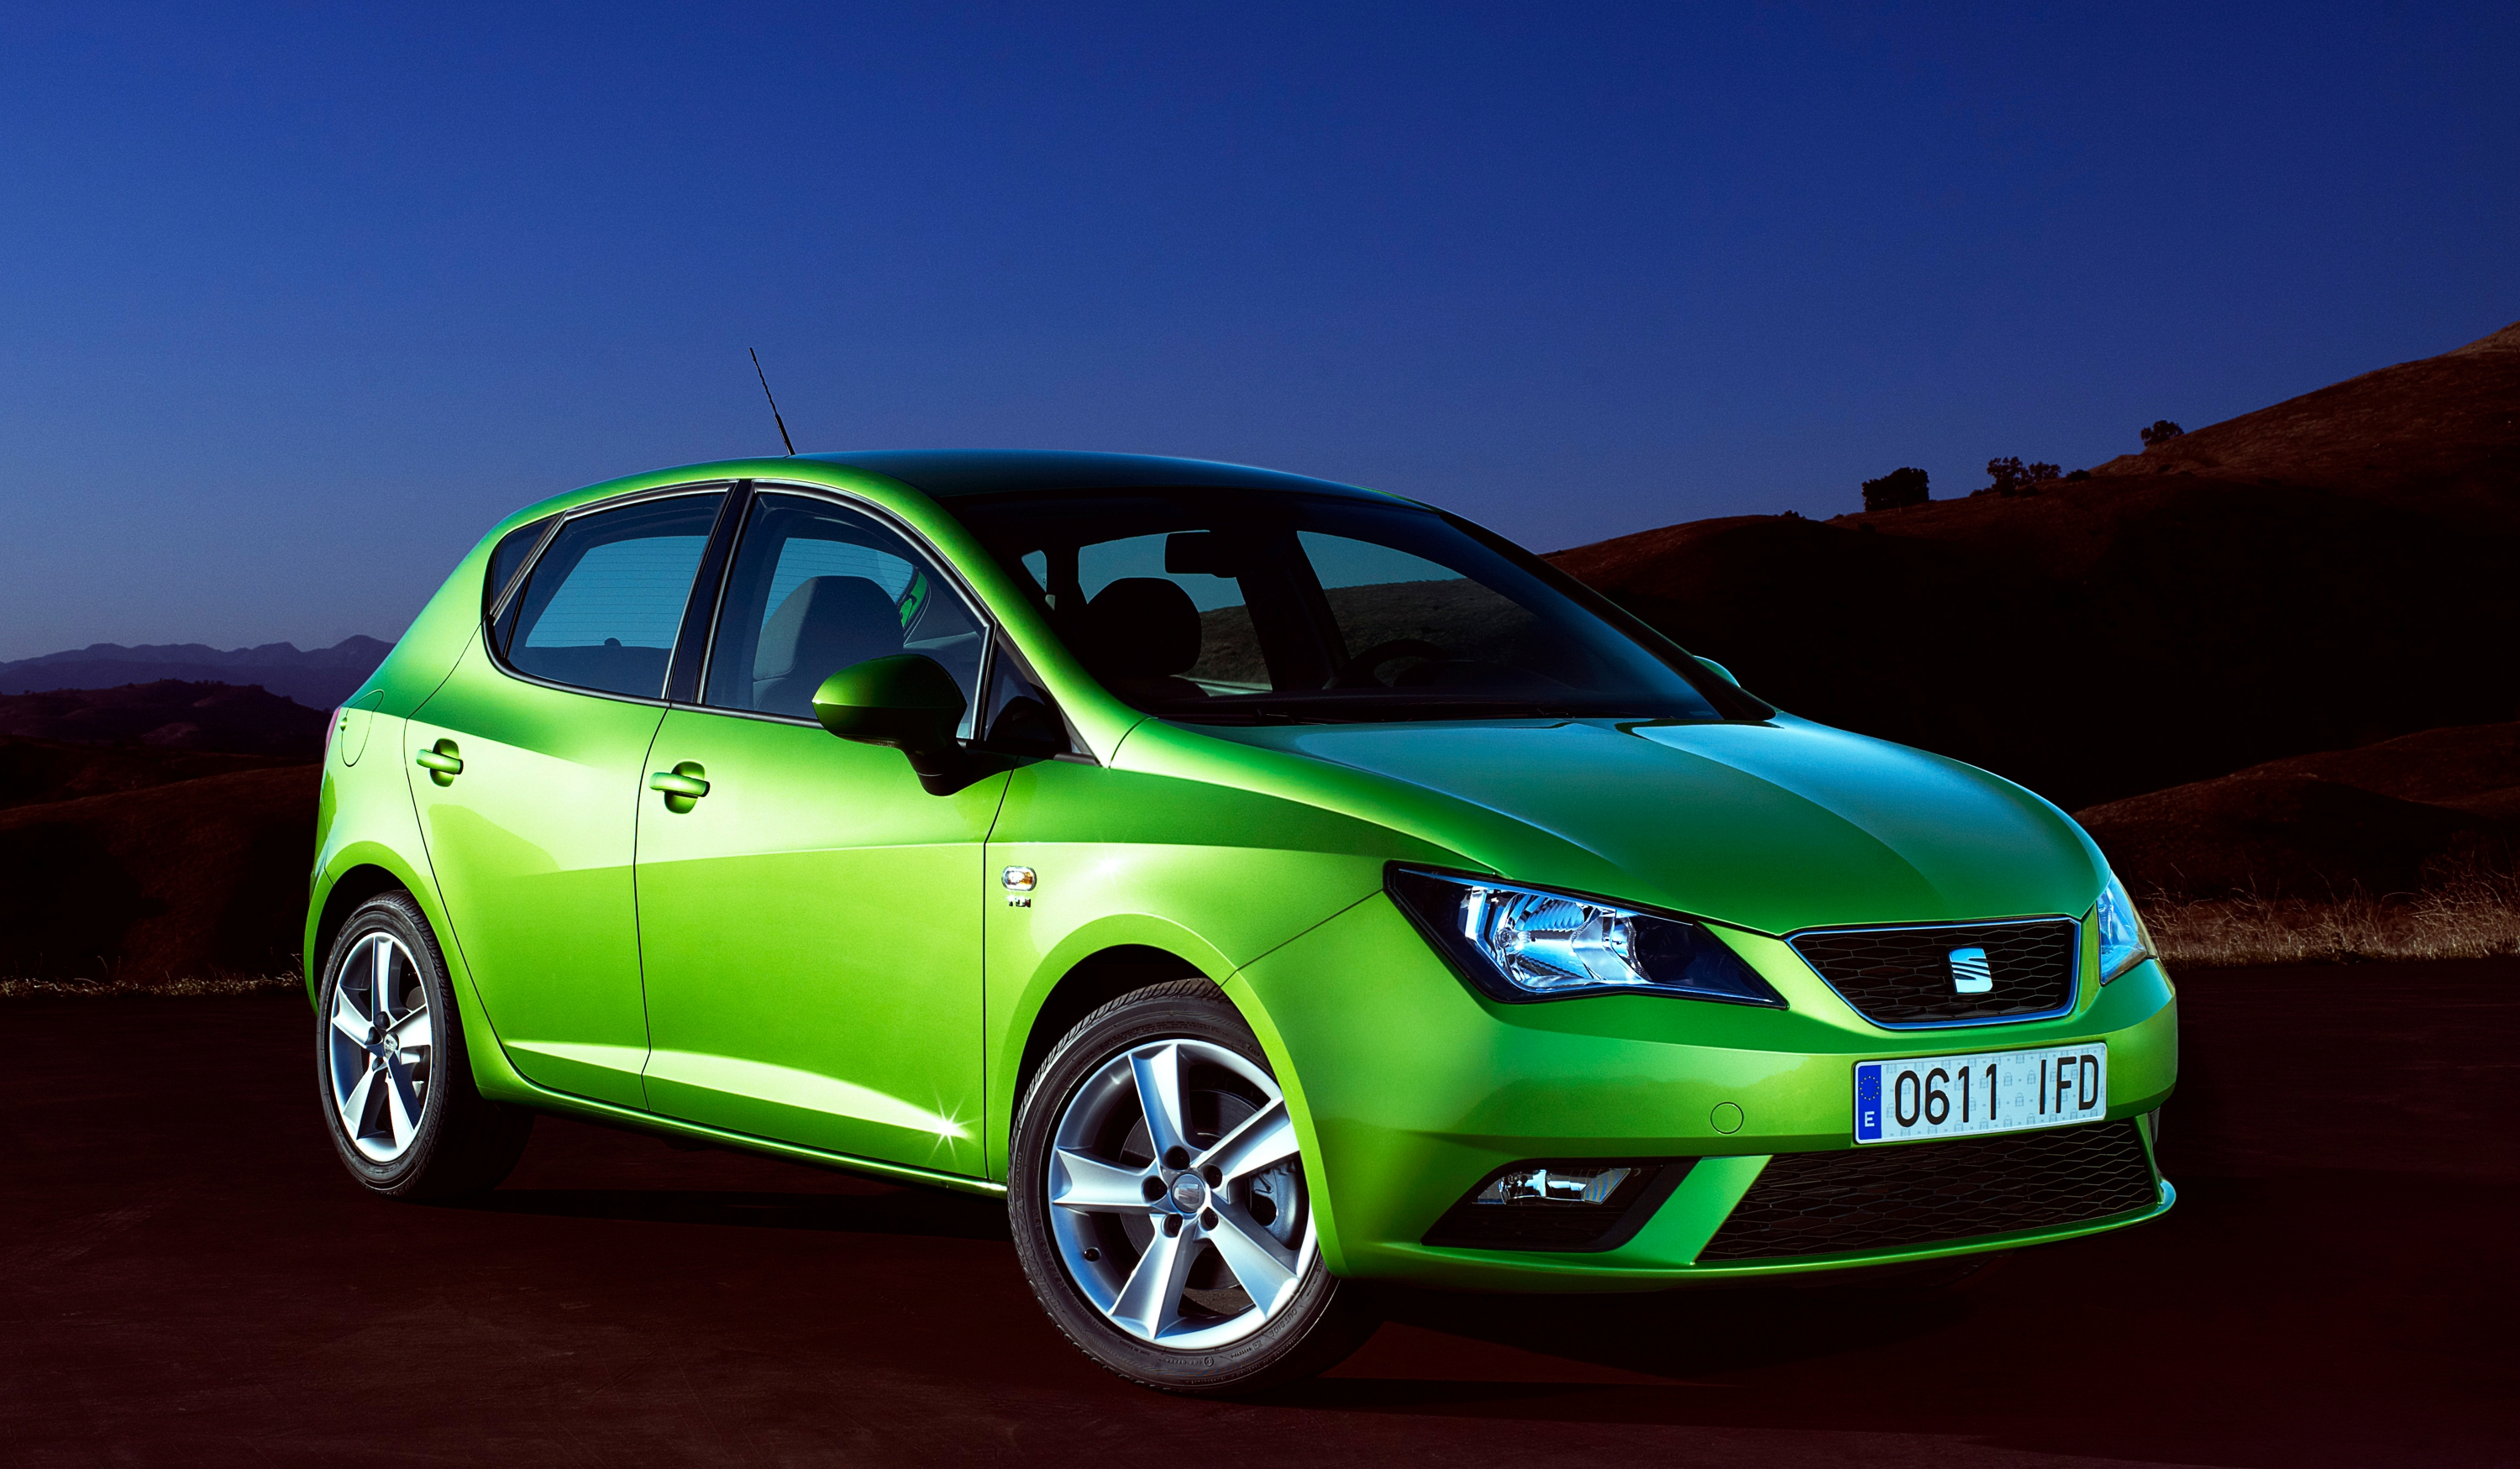 new seat ibiza fr 2 0 tdi car write ups. Black Bedroom Furniture Sets. Home Design Ideas